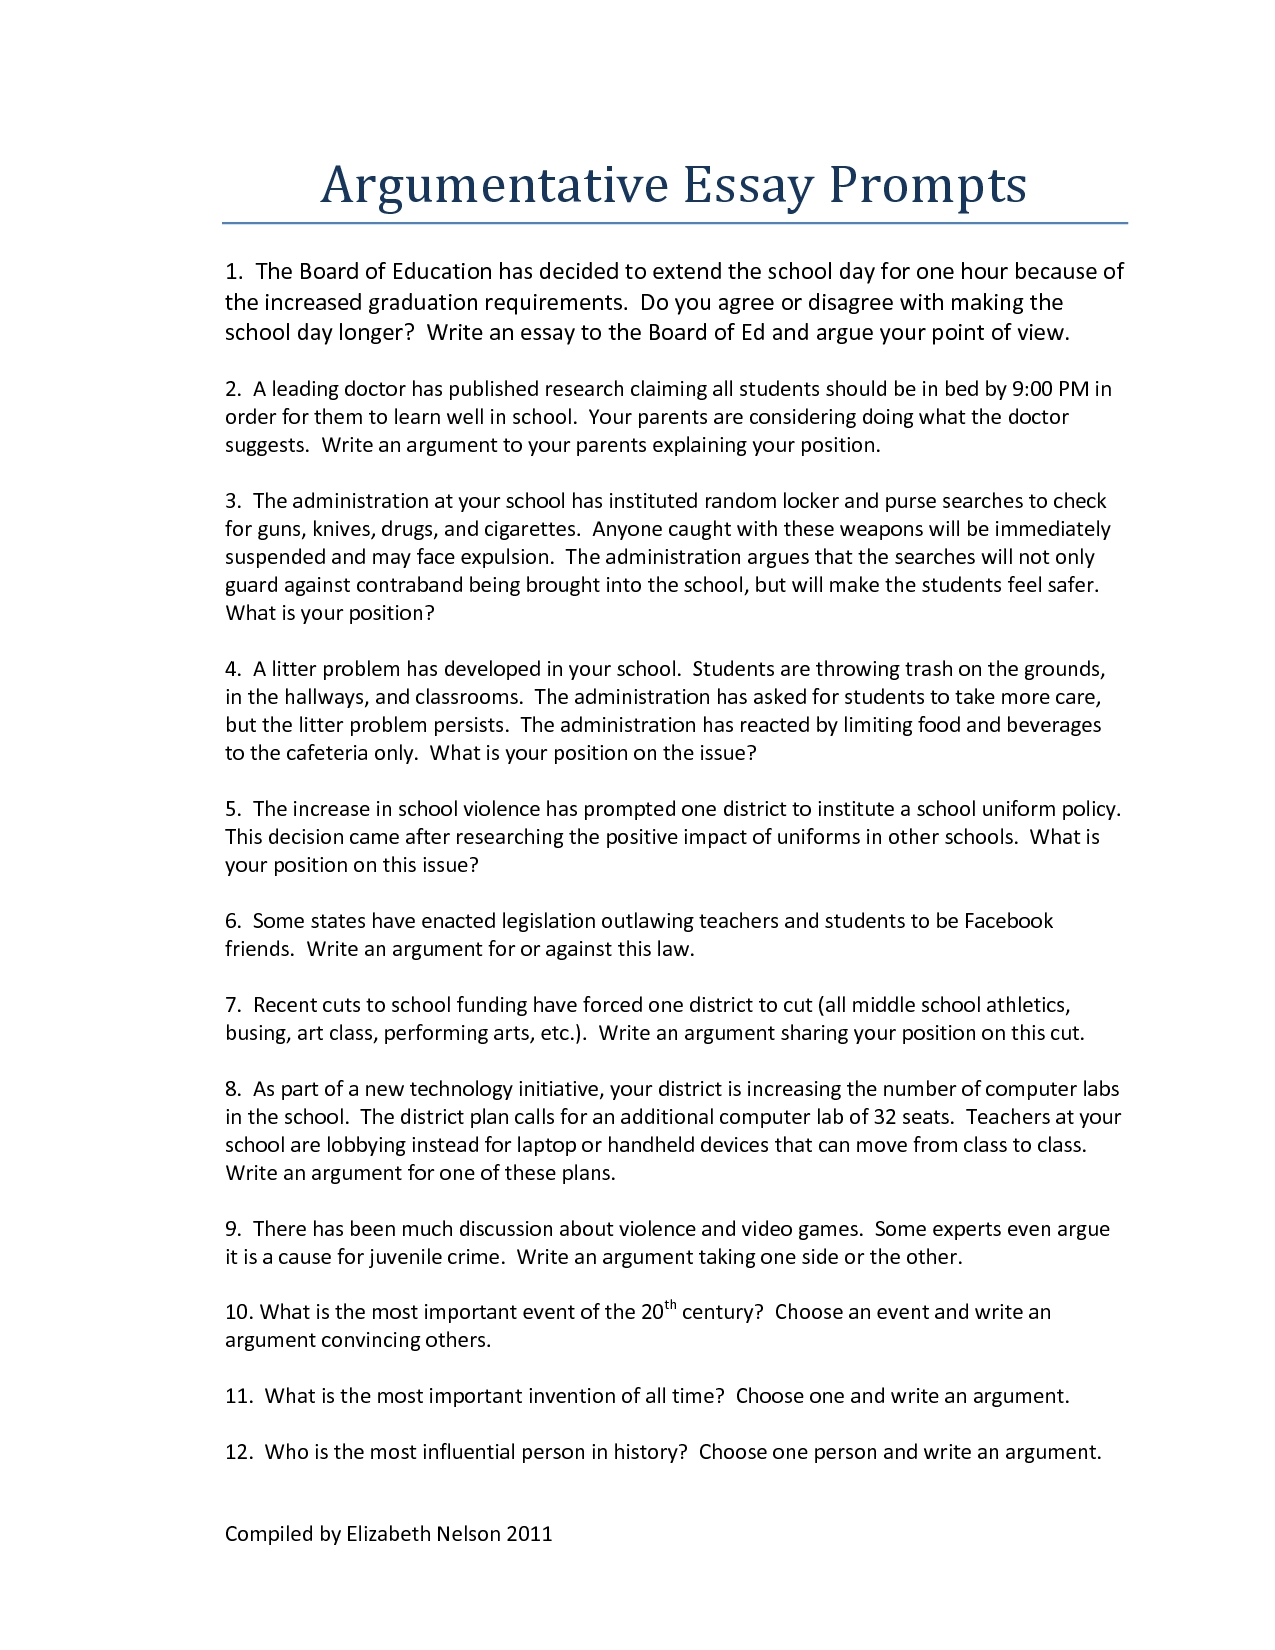 006 Persuasive Essay Topics For Middle School Argumentative Writings And Essays Easy Good High Argument Higher English 6th Grade Kids Pdf College About Imposing Speech Students Interest Prompts Full